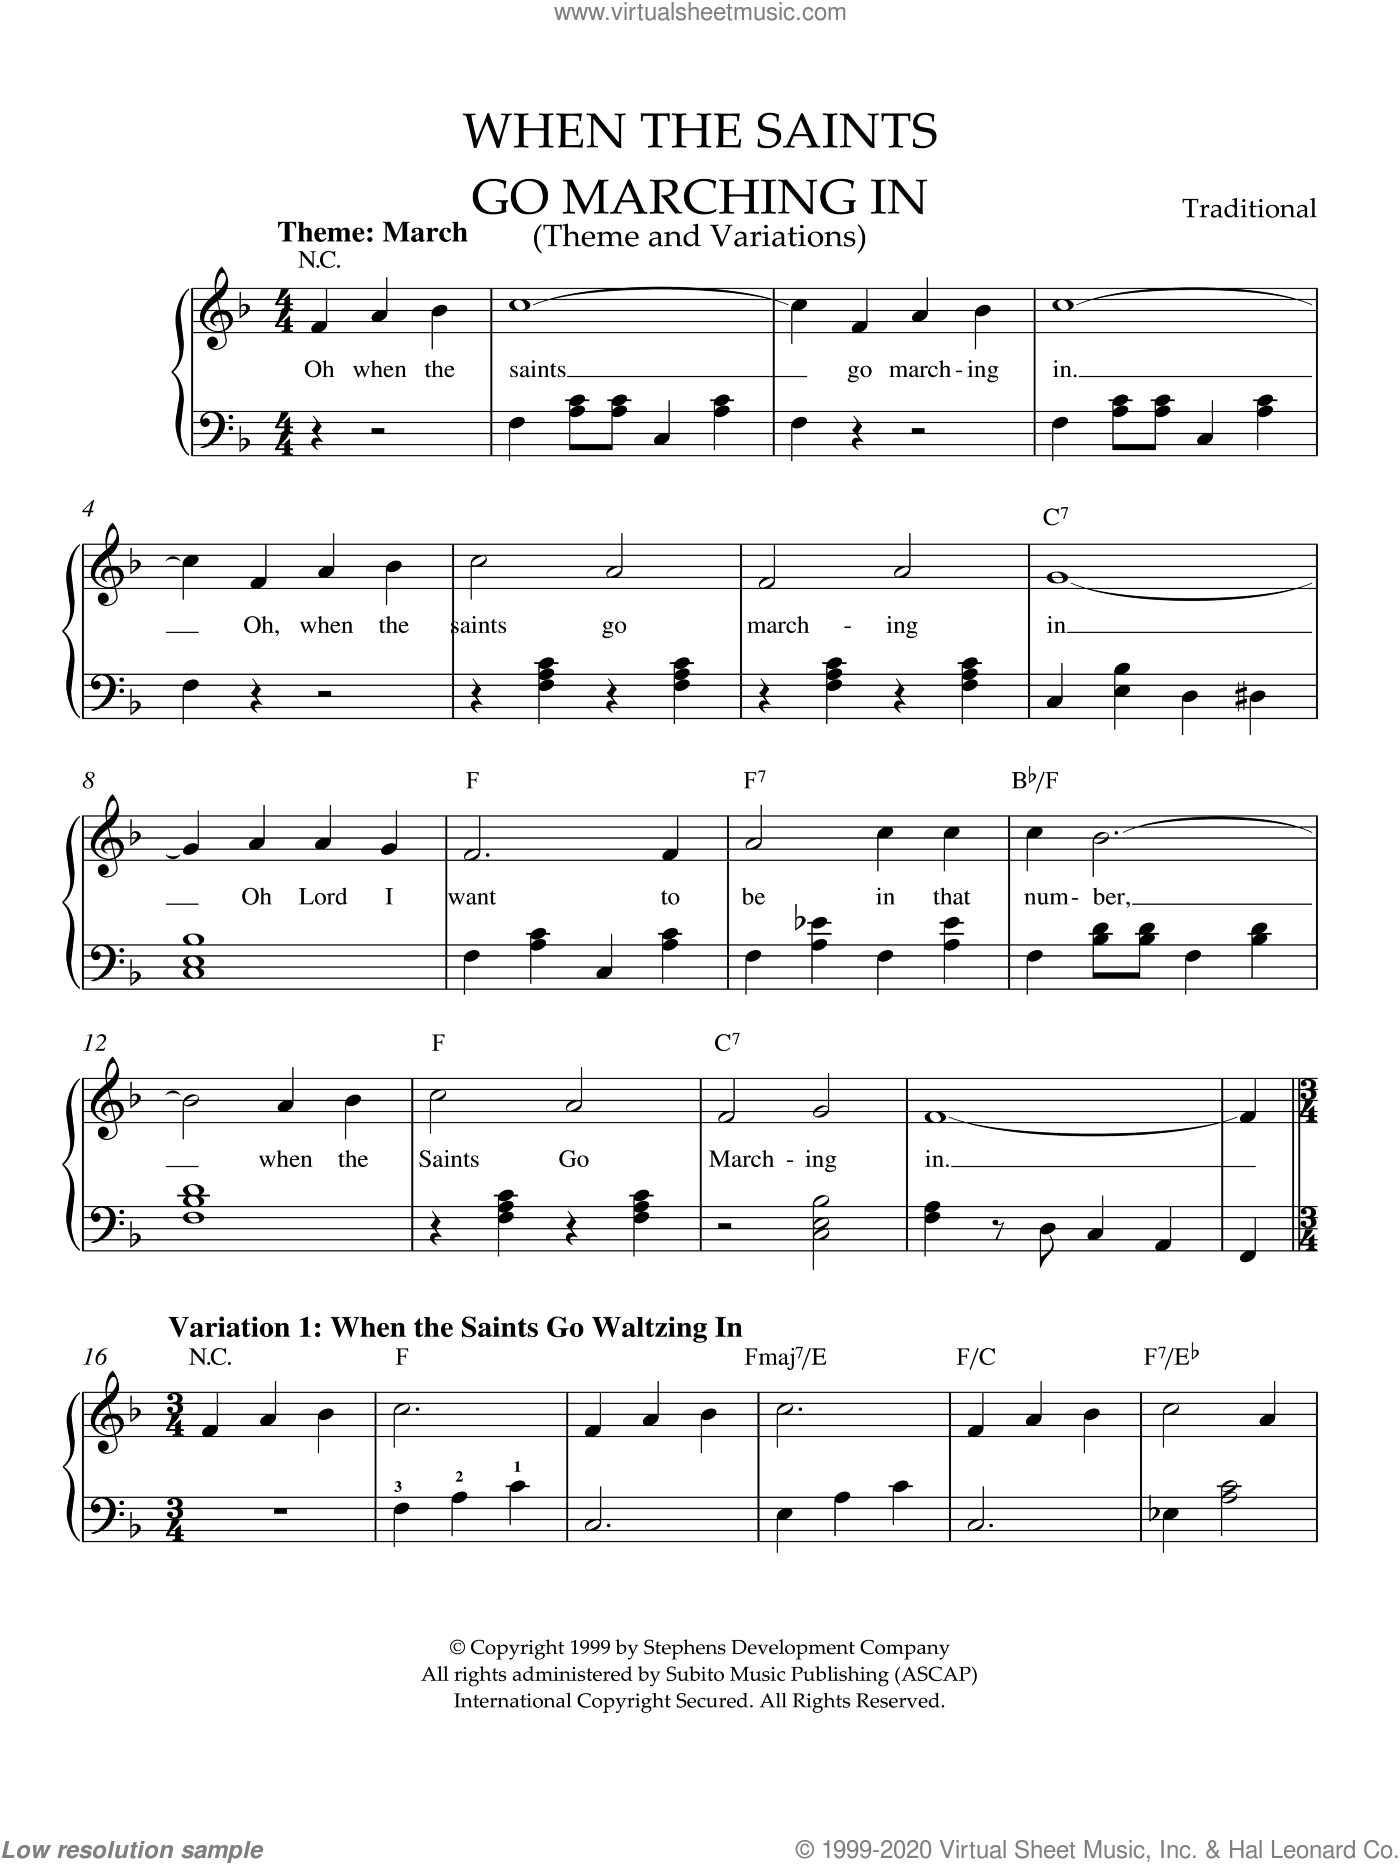 When The Saints Go Marching In (Theme and Variations) sheet music for piano solo, easy piano. Score Image Preview.